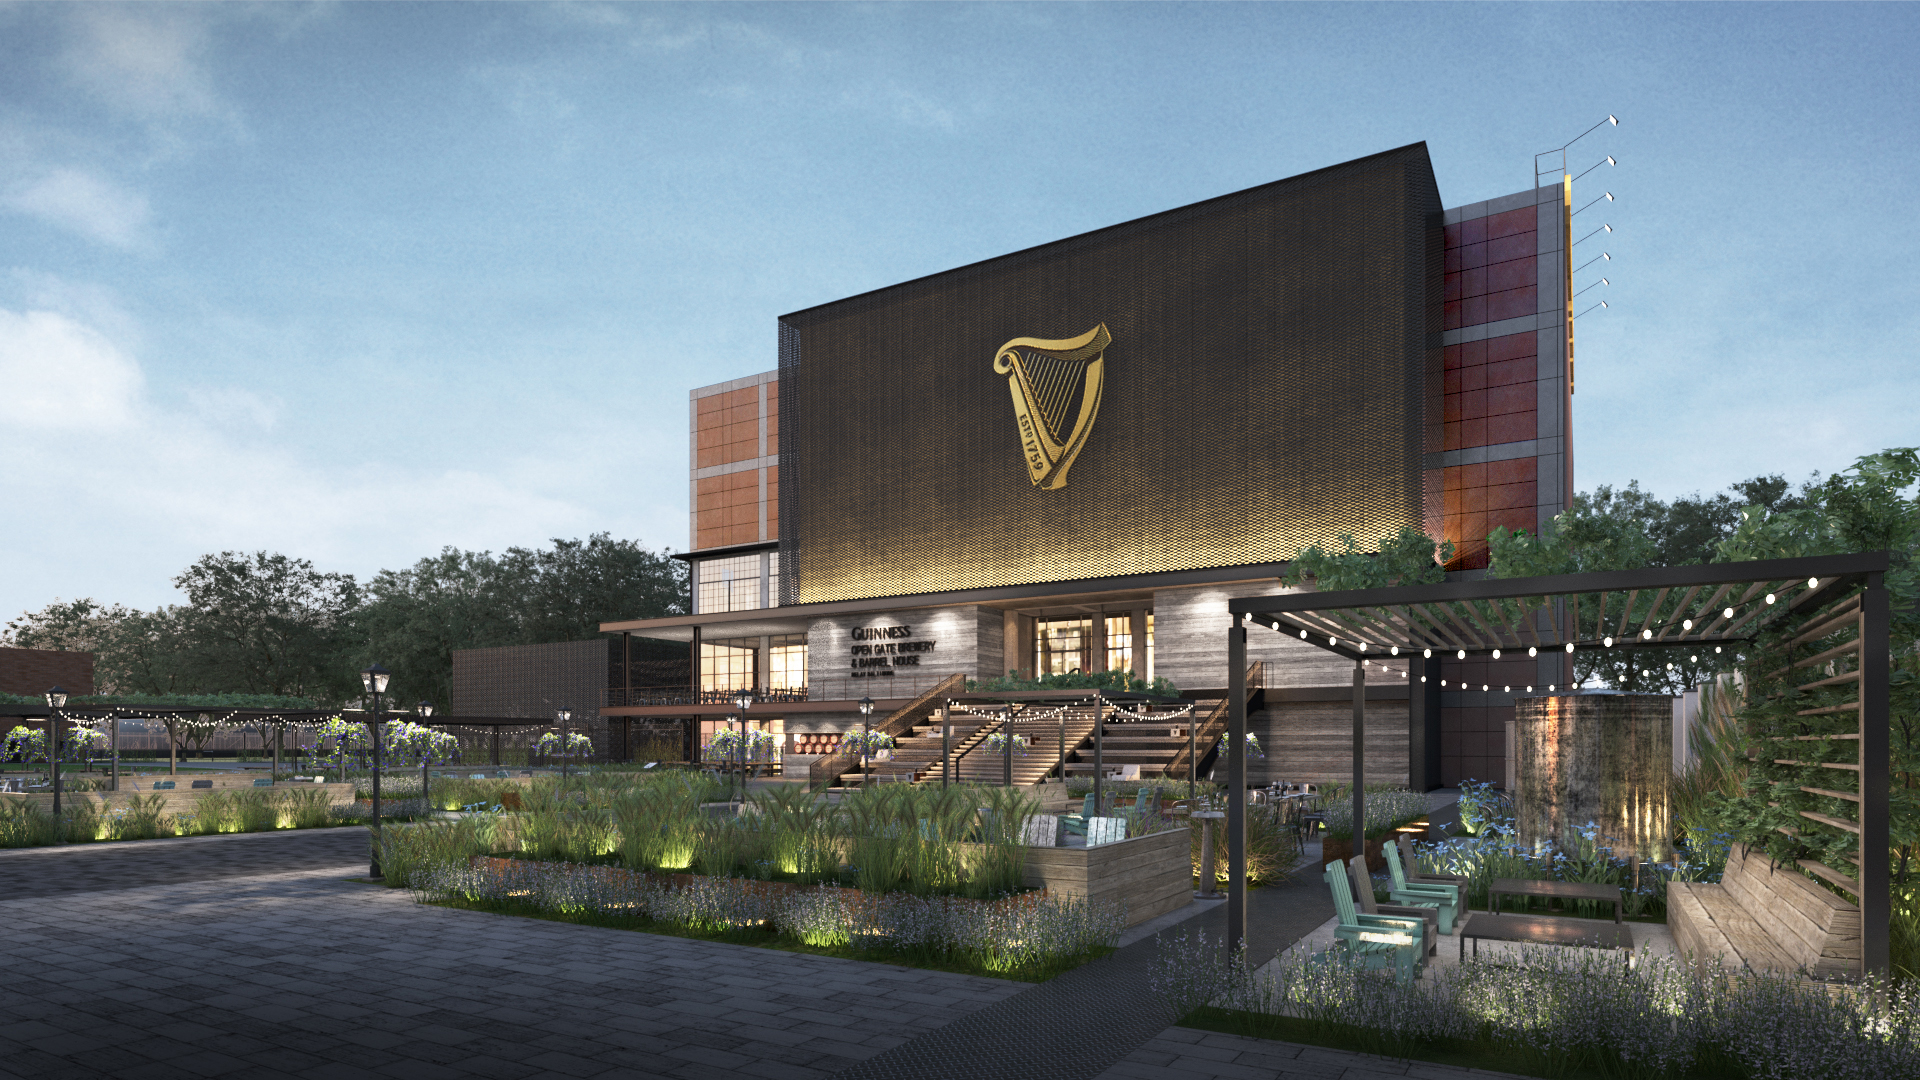 East U.S. Travel Update: Guinness Brewery in Baltimore to Offer Tours,Oprah Winfrey Exhibit Comes to the Smithsonian